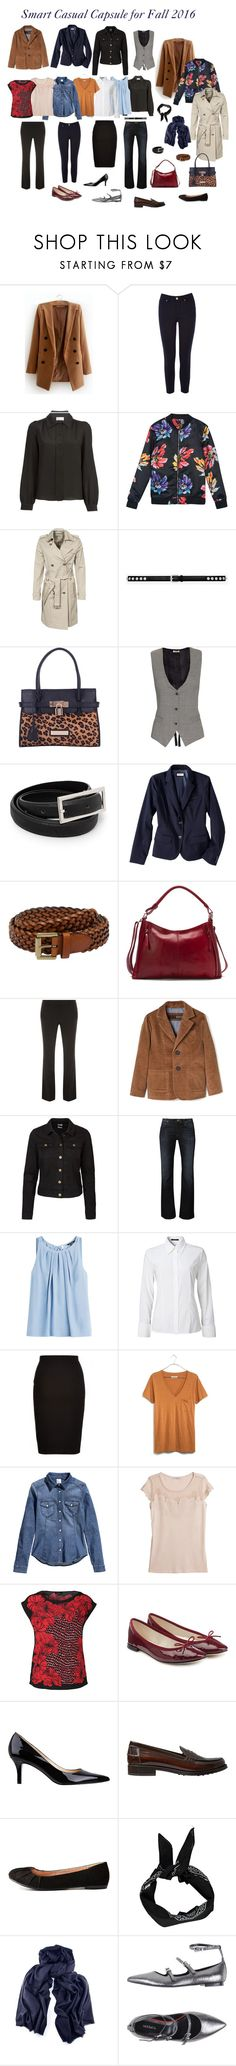 """Smart Casual Capsule for Fall 2016"" by meibaola ❤ liked on Polyvore featuring Oasis, RED Valentino, MICHAEL Michael Kors, Yves Saint Laurent, Lipsy, L'Agence, MANGO, Merona, Mulberry and Osgoode Marley"